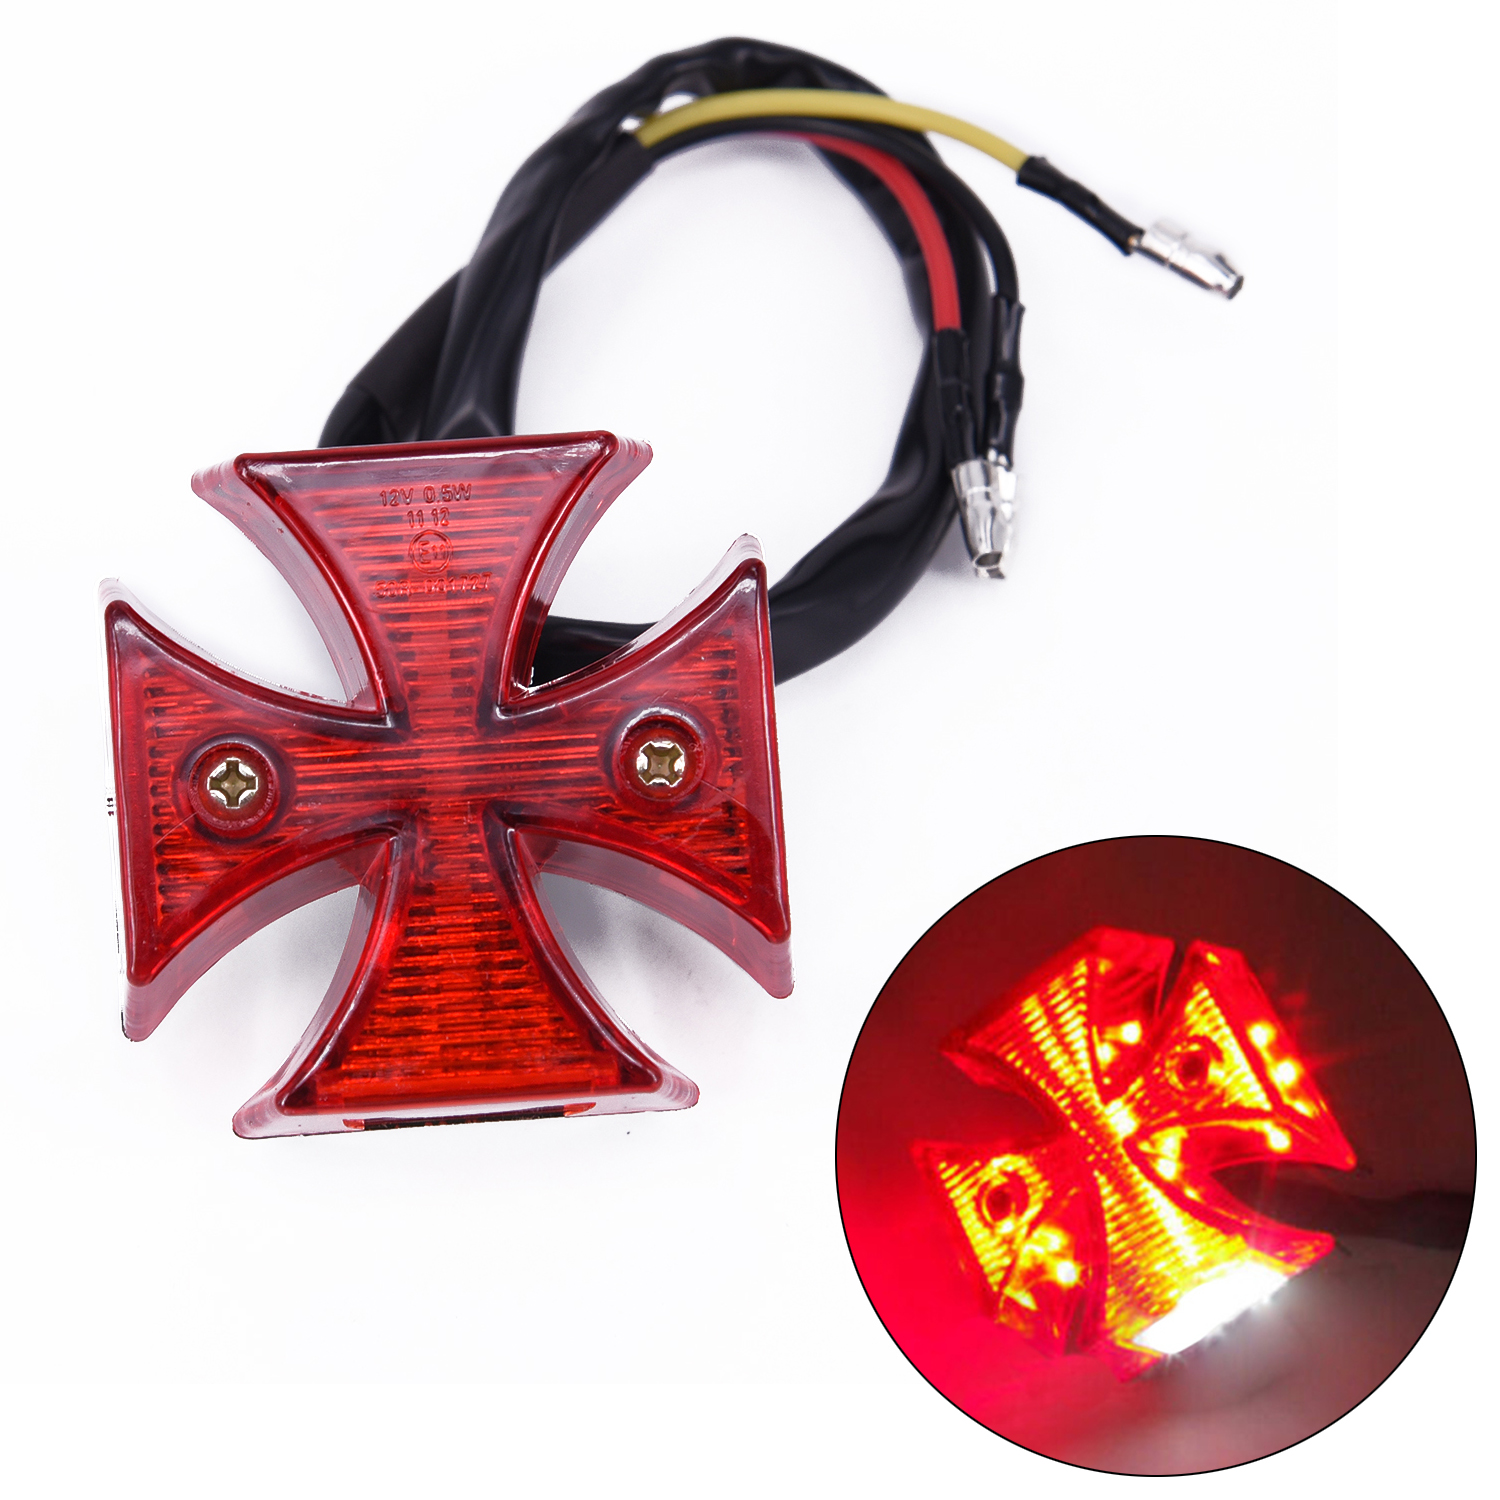 Atv,rv,boat & Other Vehicle Dc 12v Universal Led Motorcycle Quads Maltese Cross Tail Brake Lamps Rear Lights